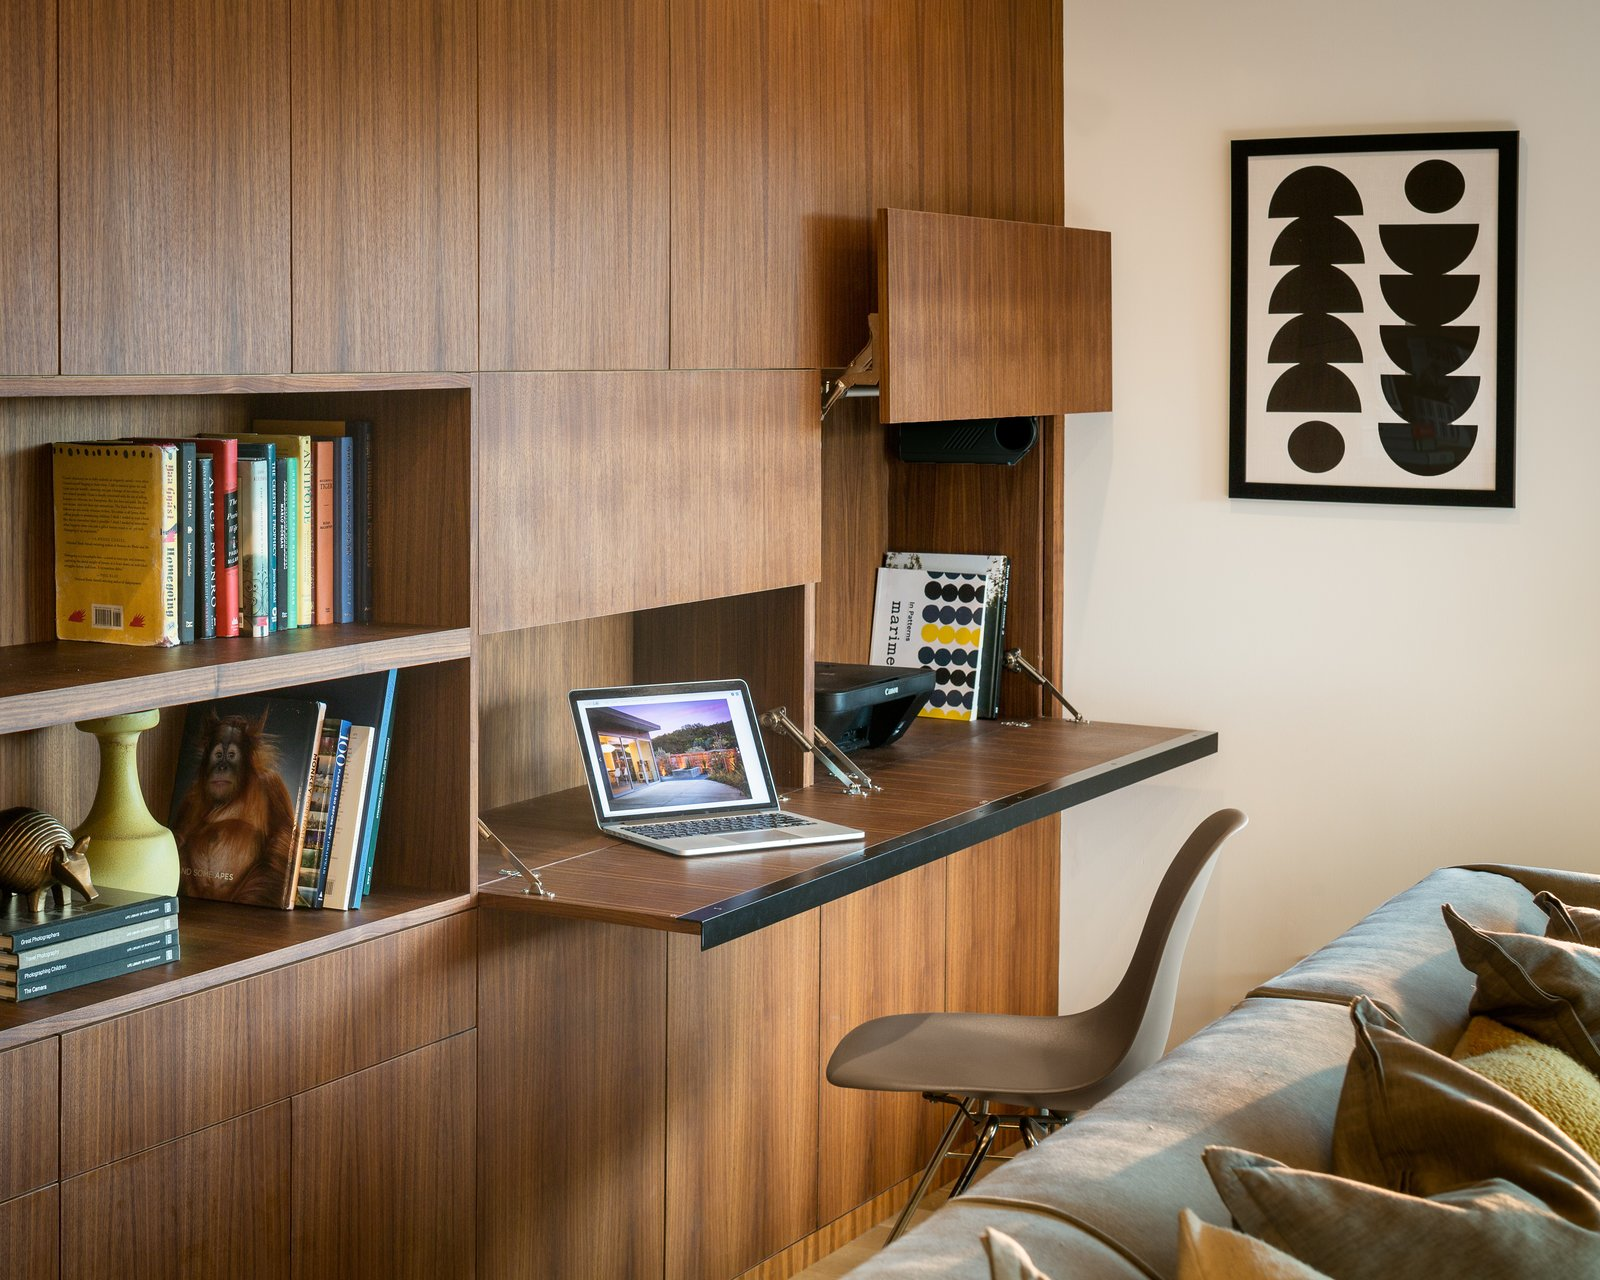 walnut shelving and flip-down desk  Marin Midcentury by building Lab